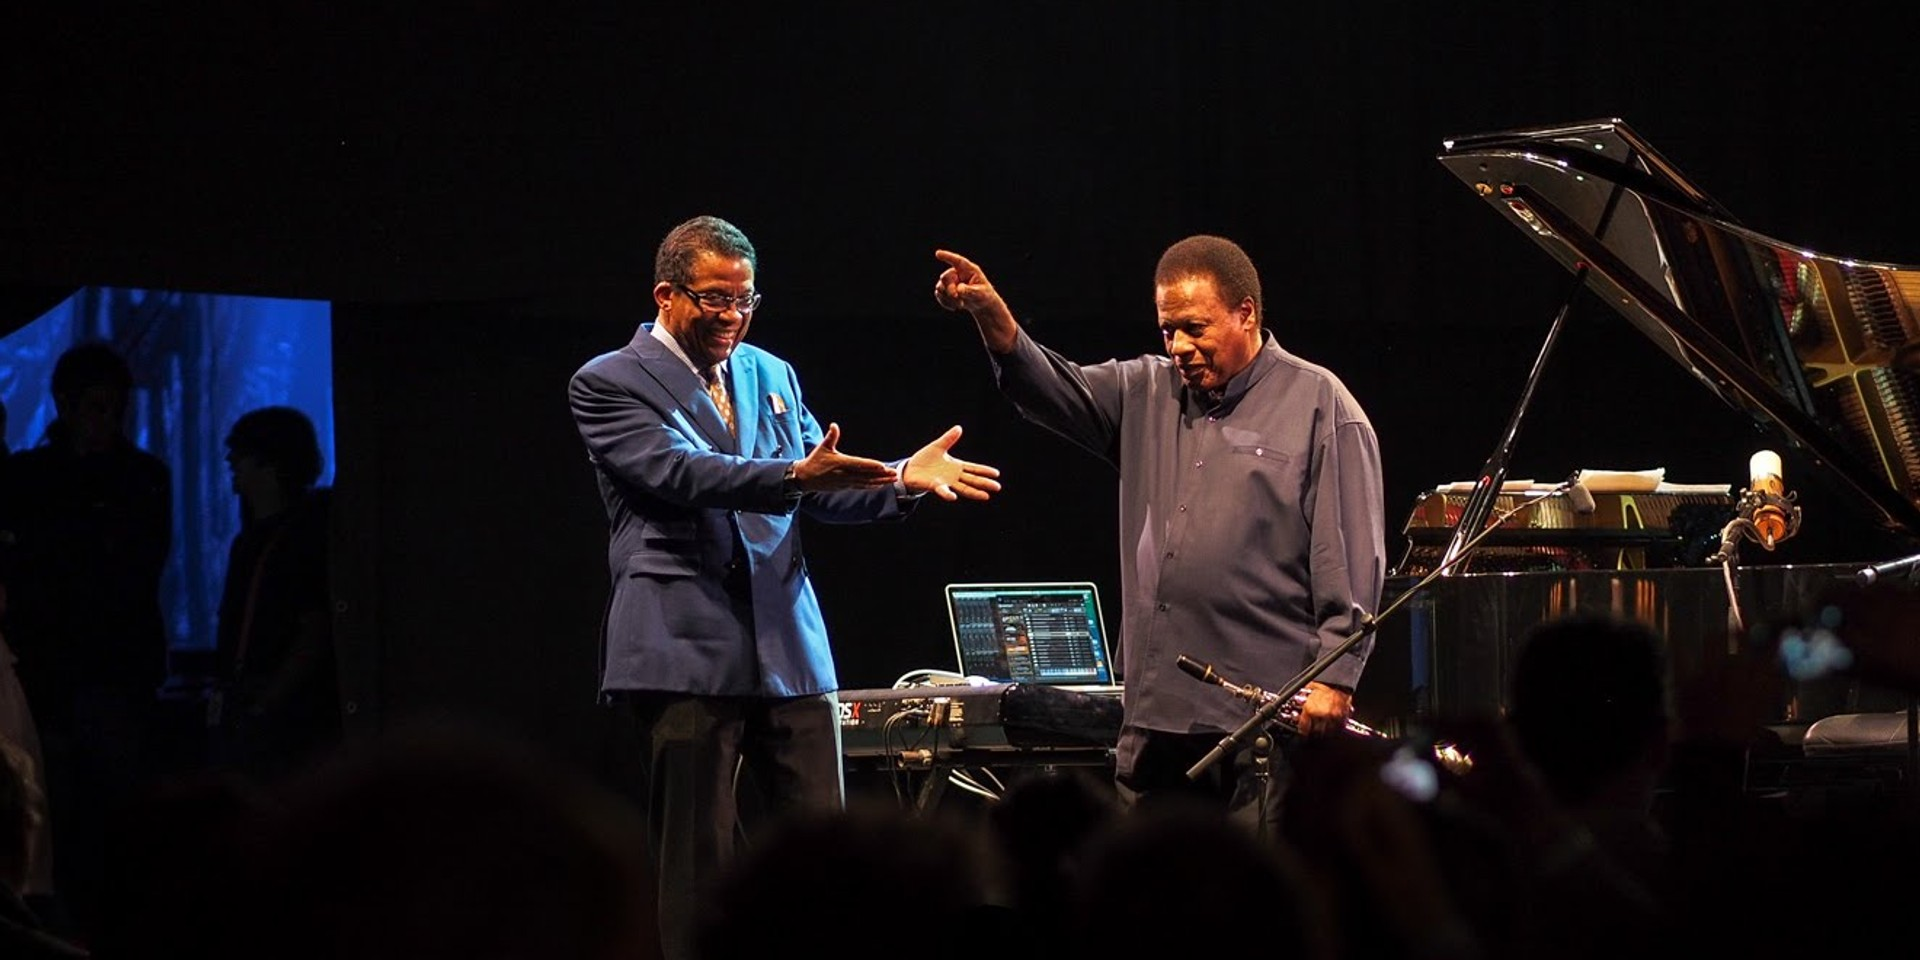 Wayne Shorter and Herbie Hancock penned an inspiring open letter to artists